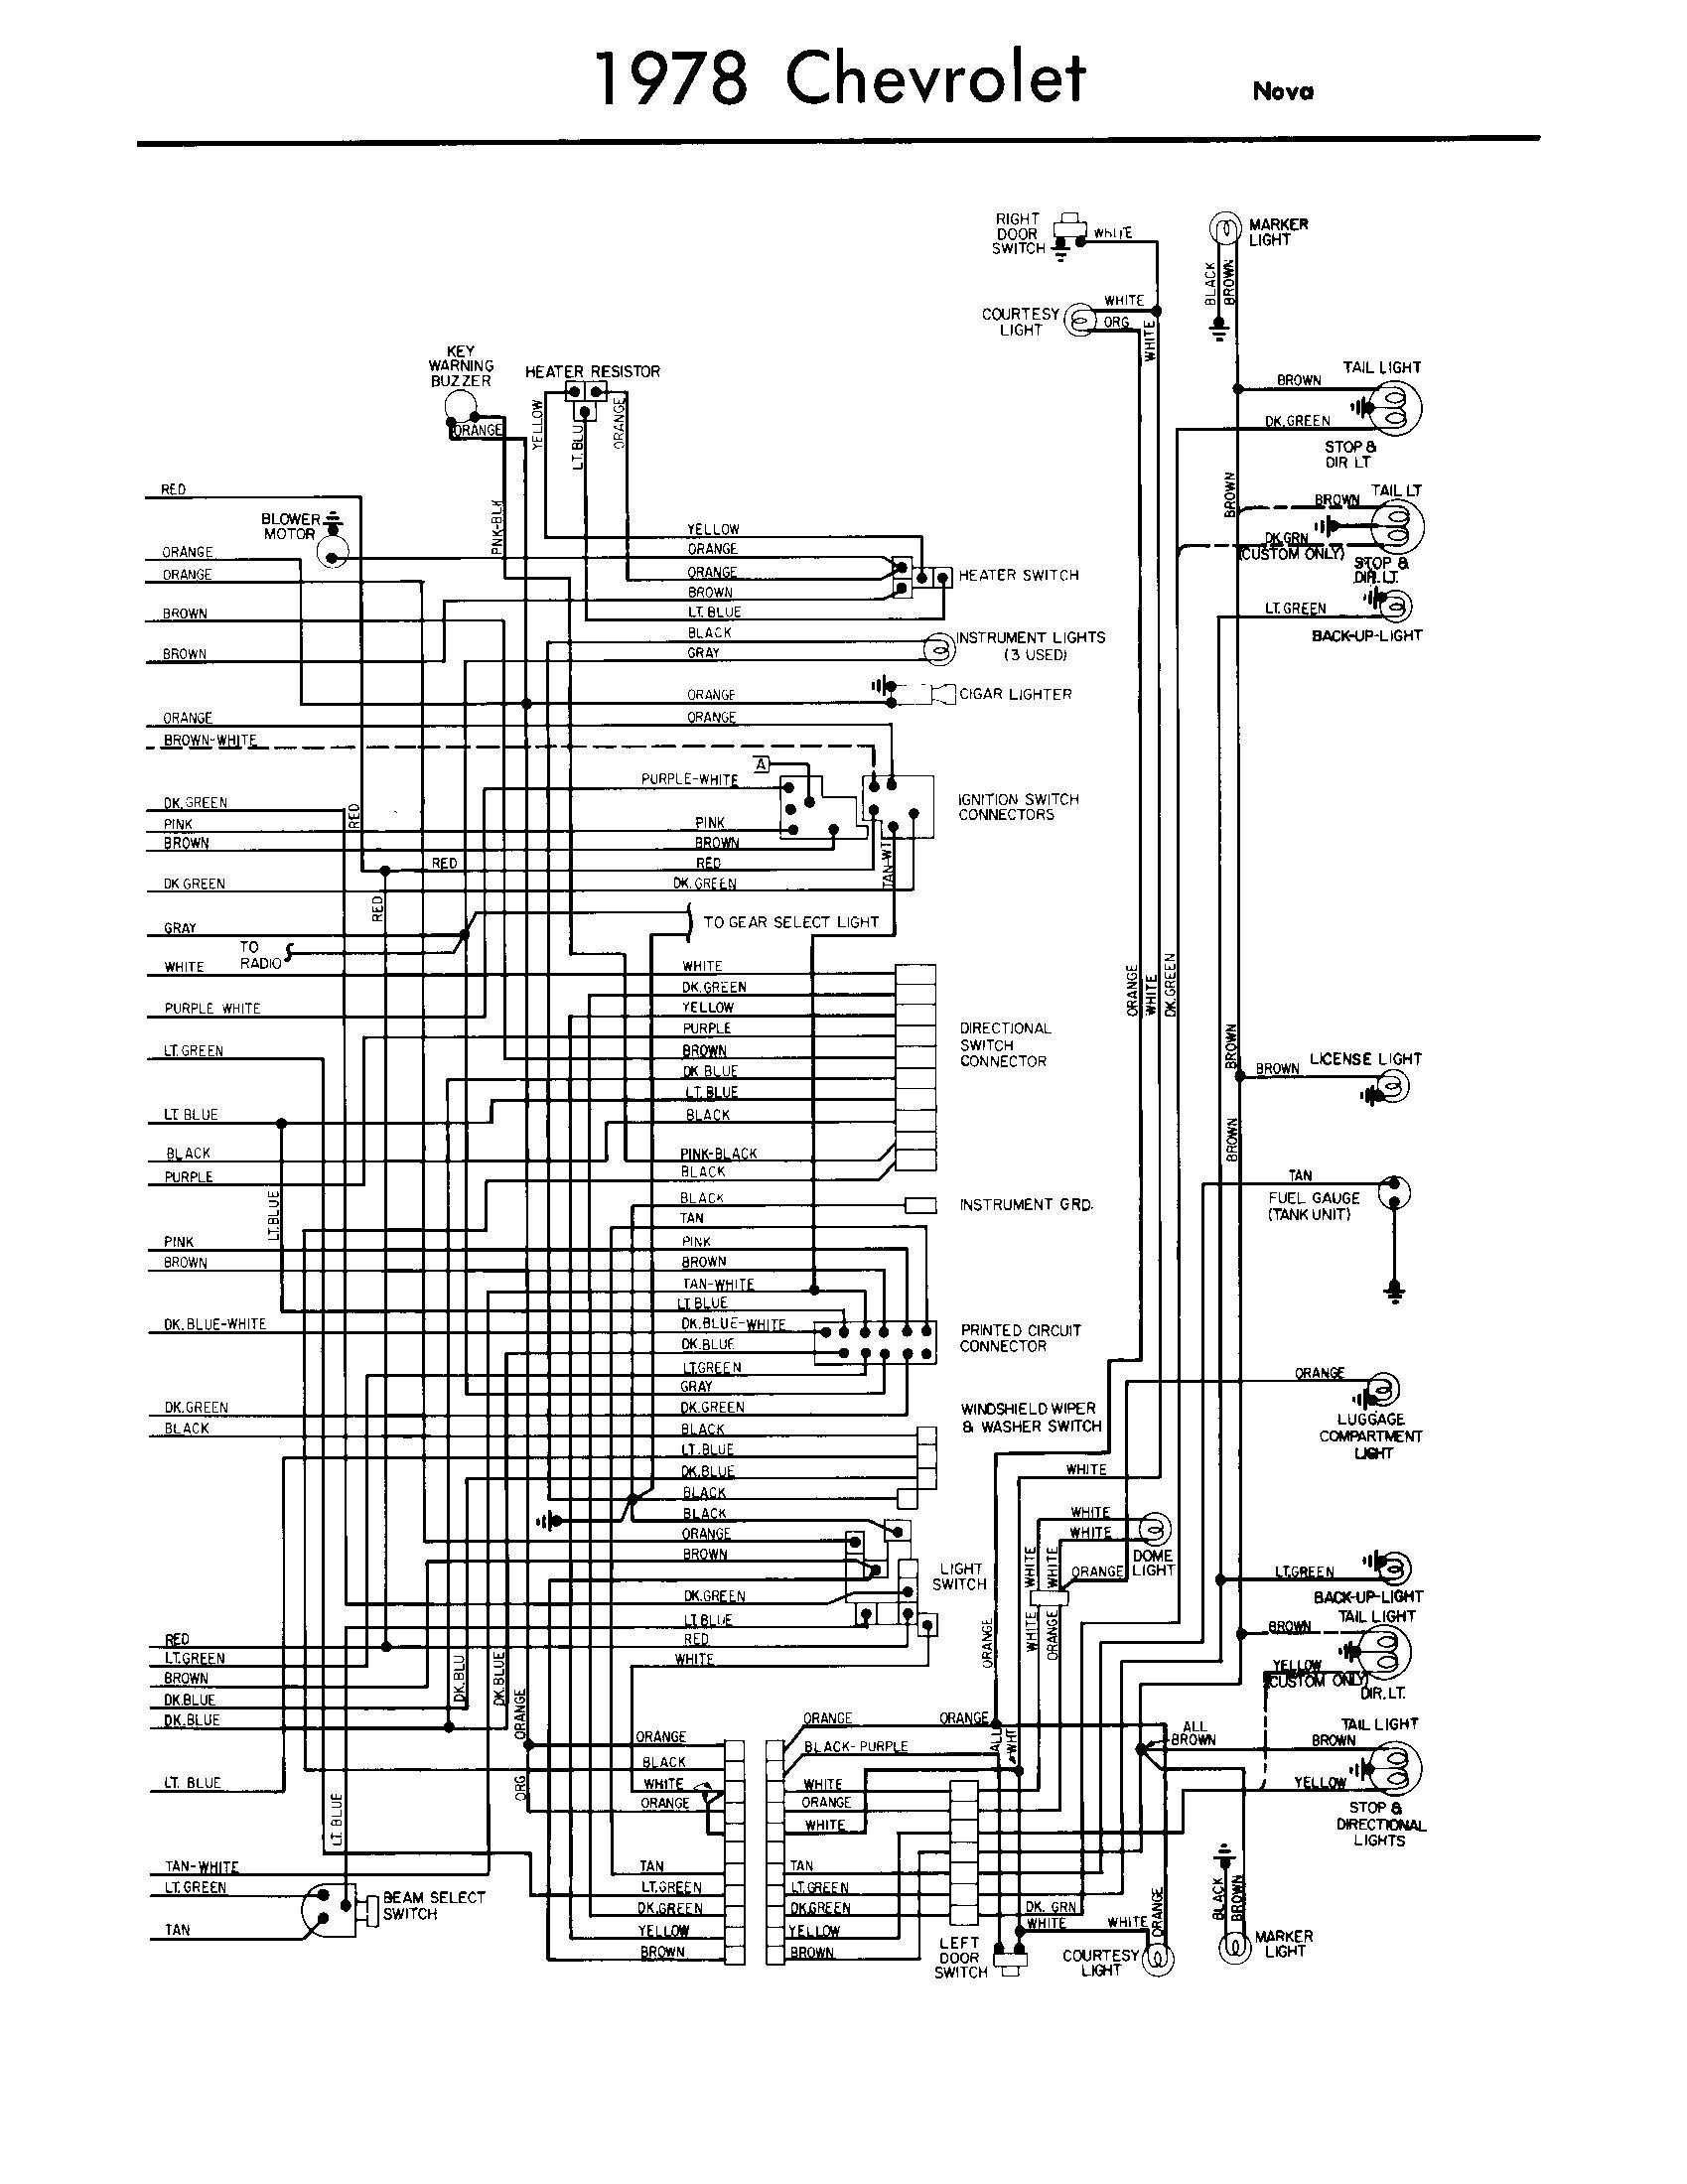 electrical wiring diagram 1978 gmc wiring diagram features 1978 gmc truck electrical wiring diagrams wiring diagram host 1978 gmc truck electrical wiring diagrams wiring